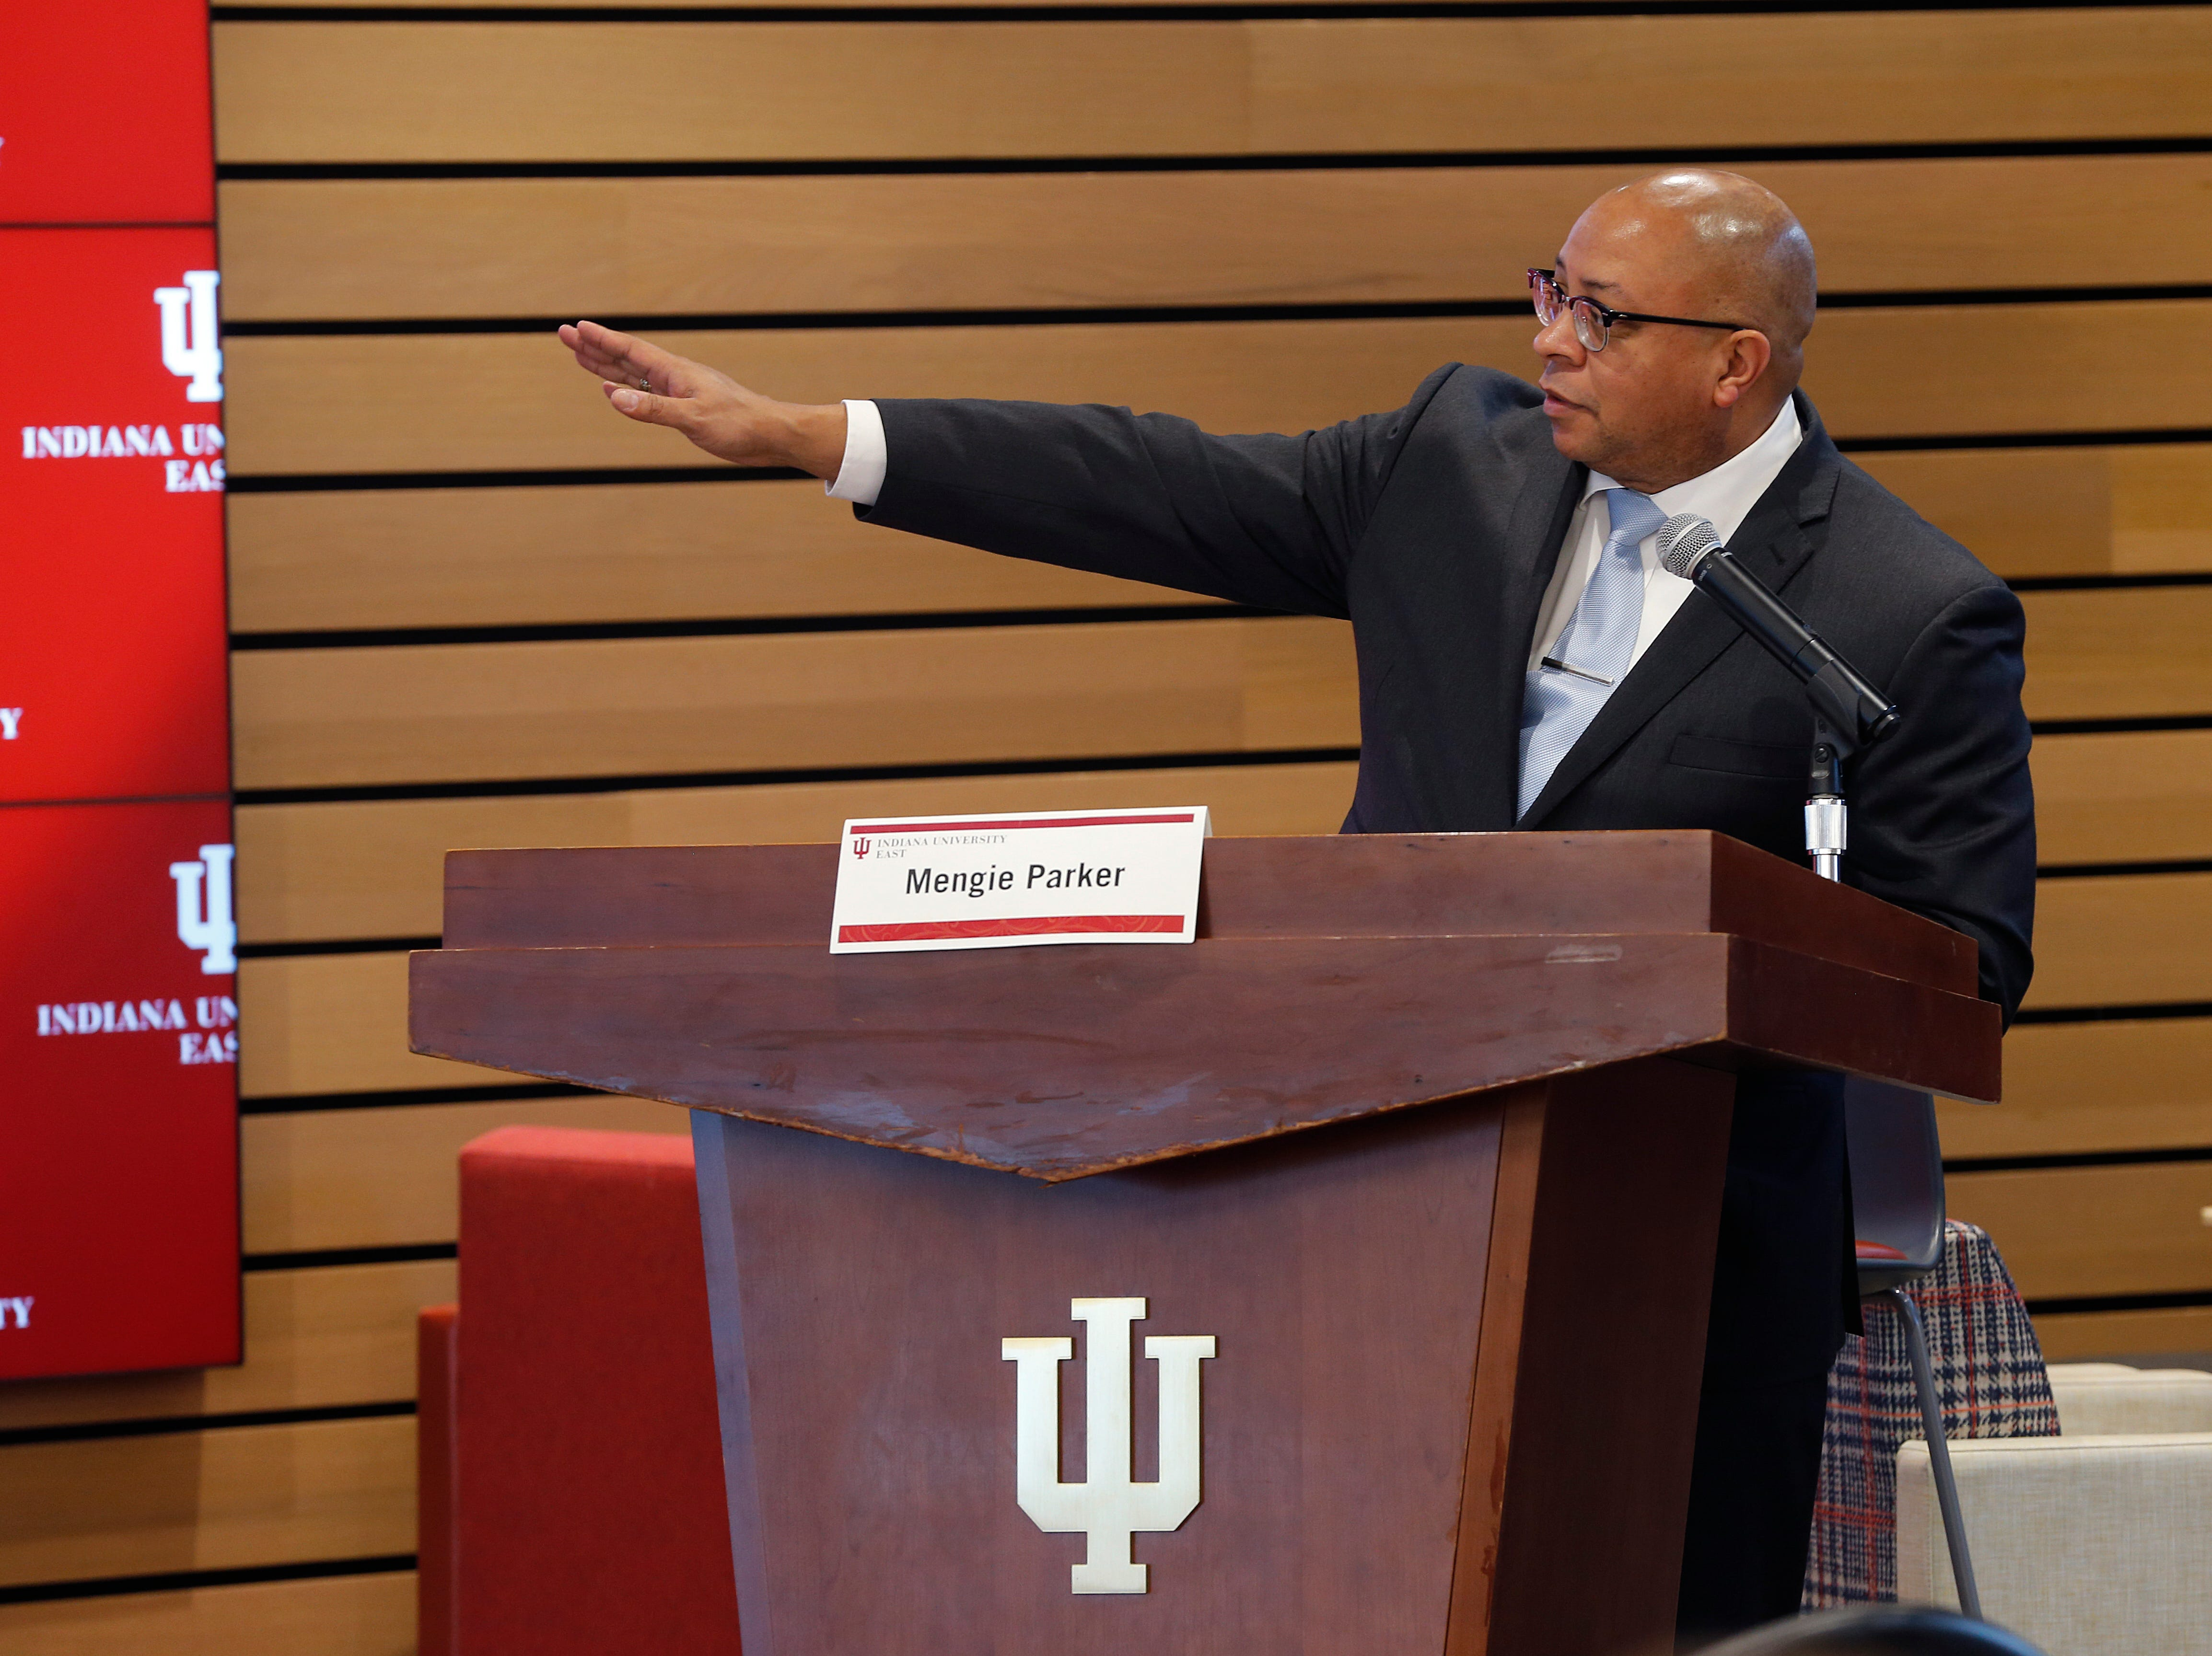 Moderator Mengie Parker gets things started at IU East's third and final Legislative Forum of the year on Friday, March 22, 2019.